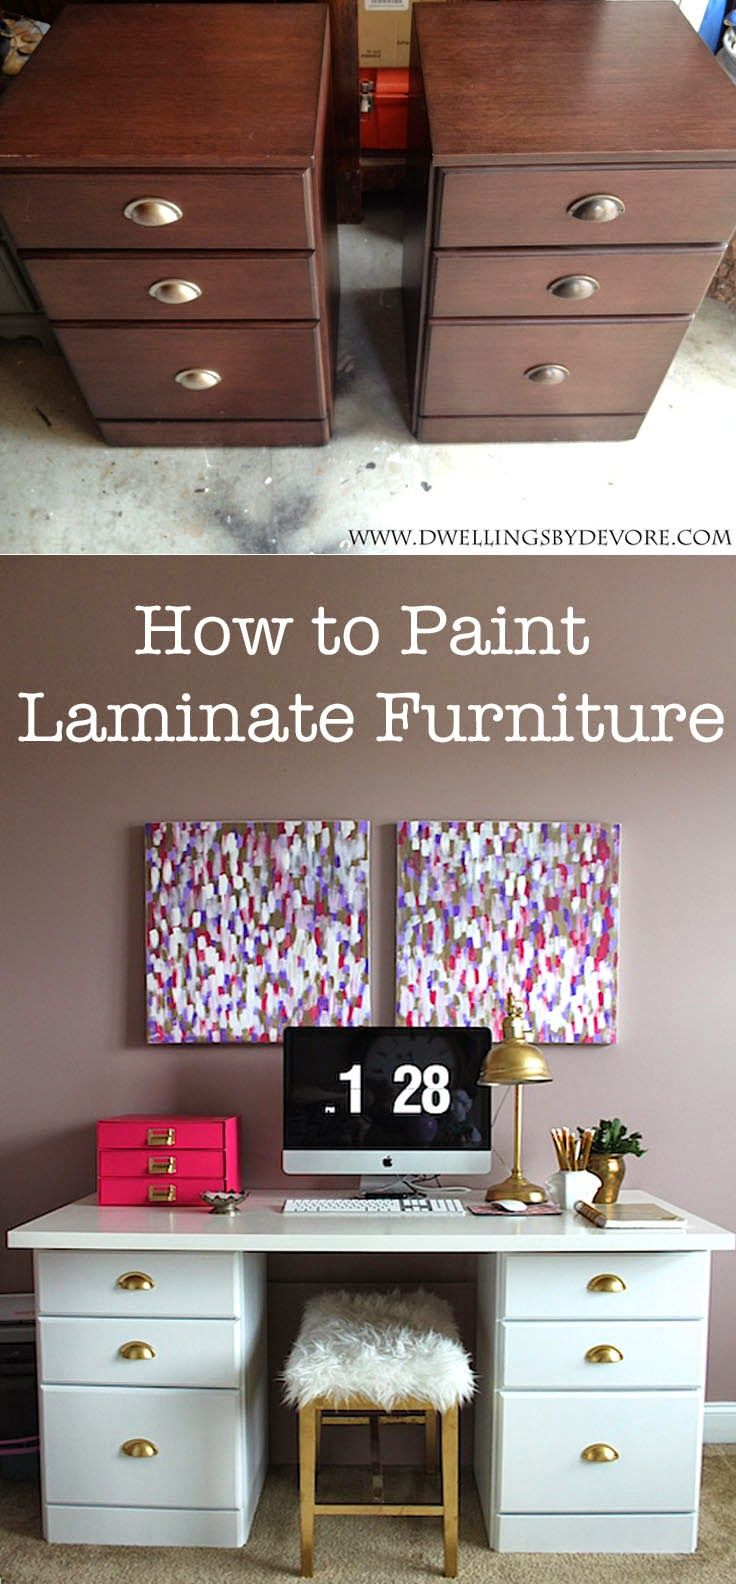 How To Paint Laminate Furniture Kilzpaintandprimer Dwellings By  # Muebles Nazaret